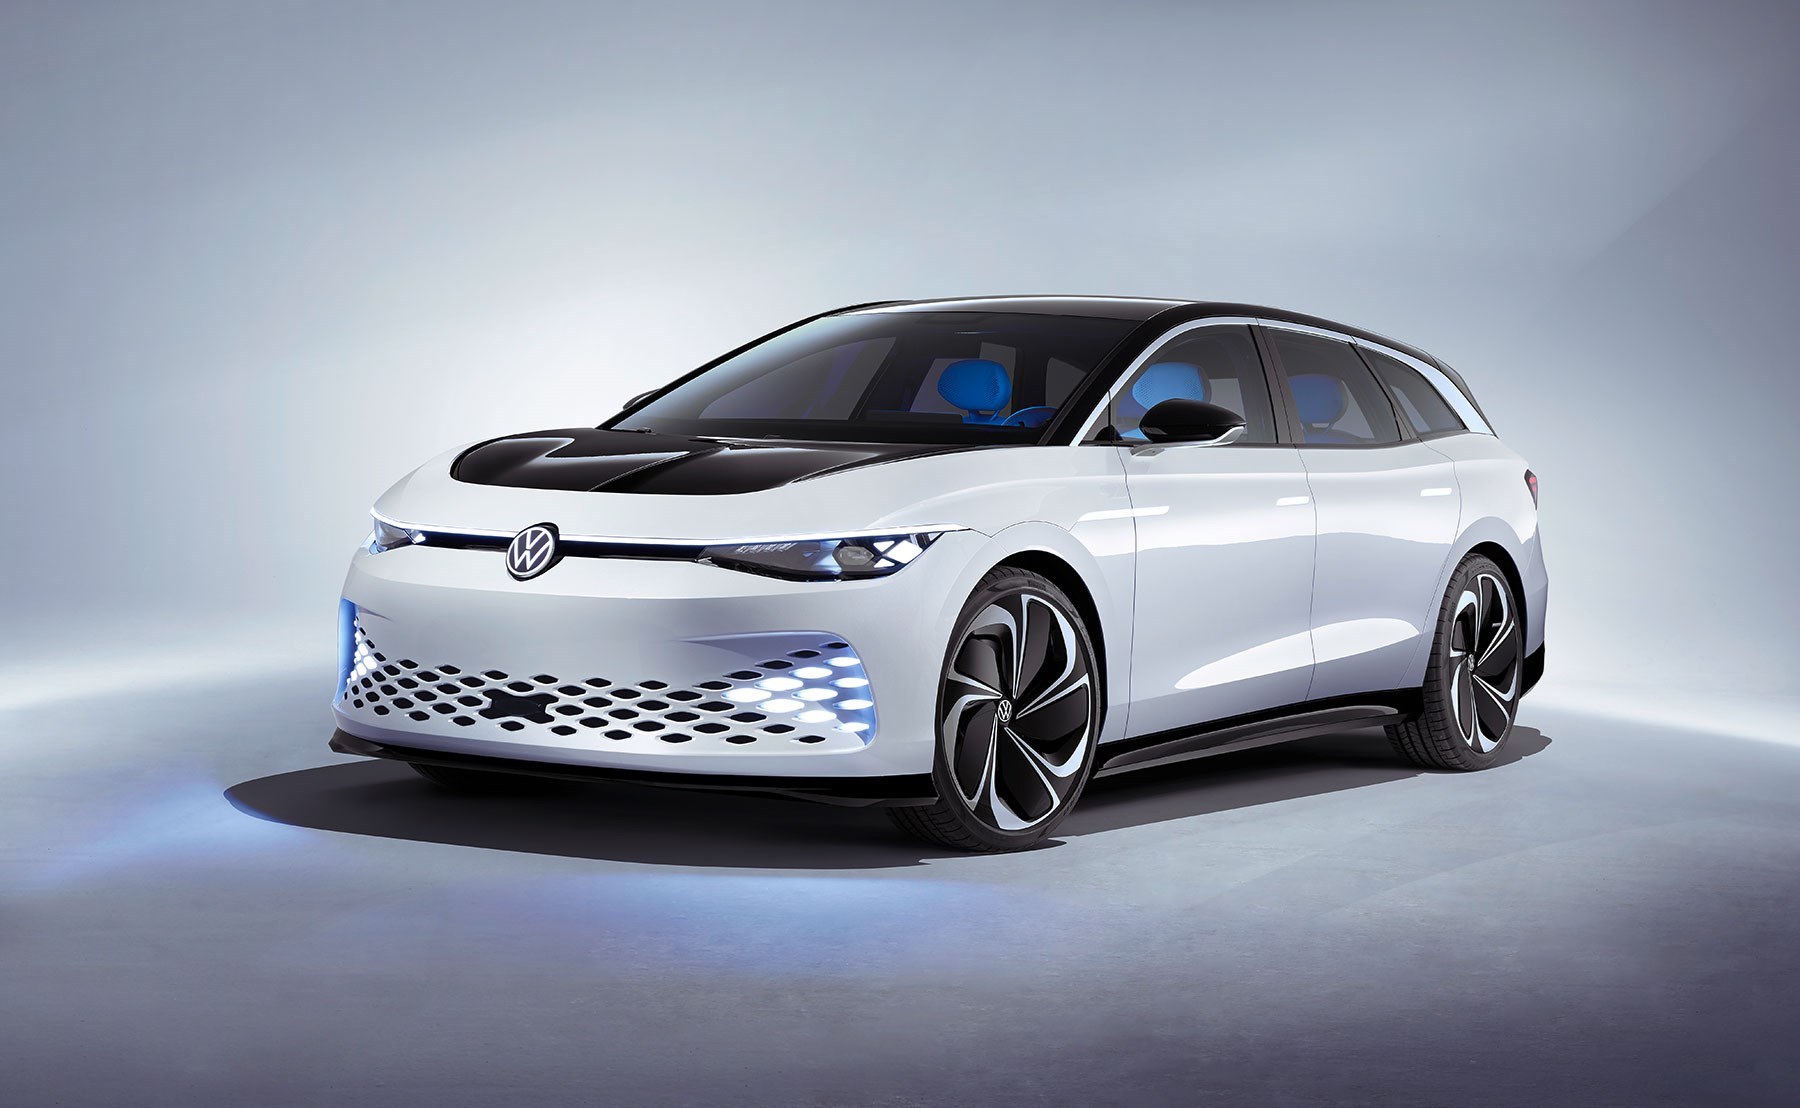 Volkswagen Concept IDs a Space Vizzion of the Future